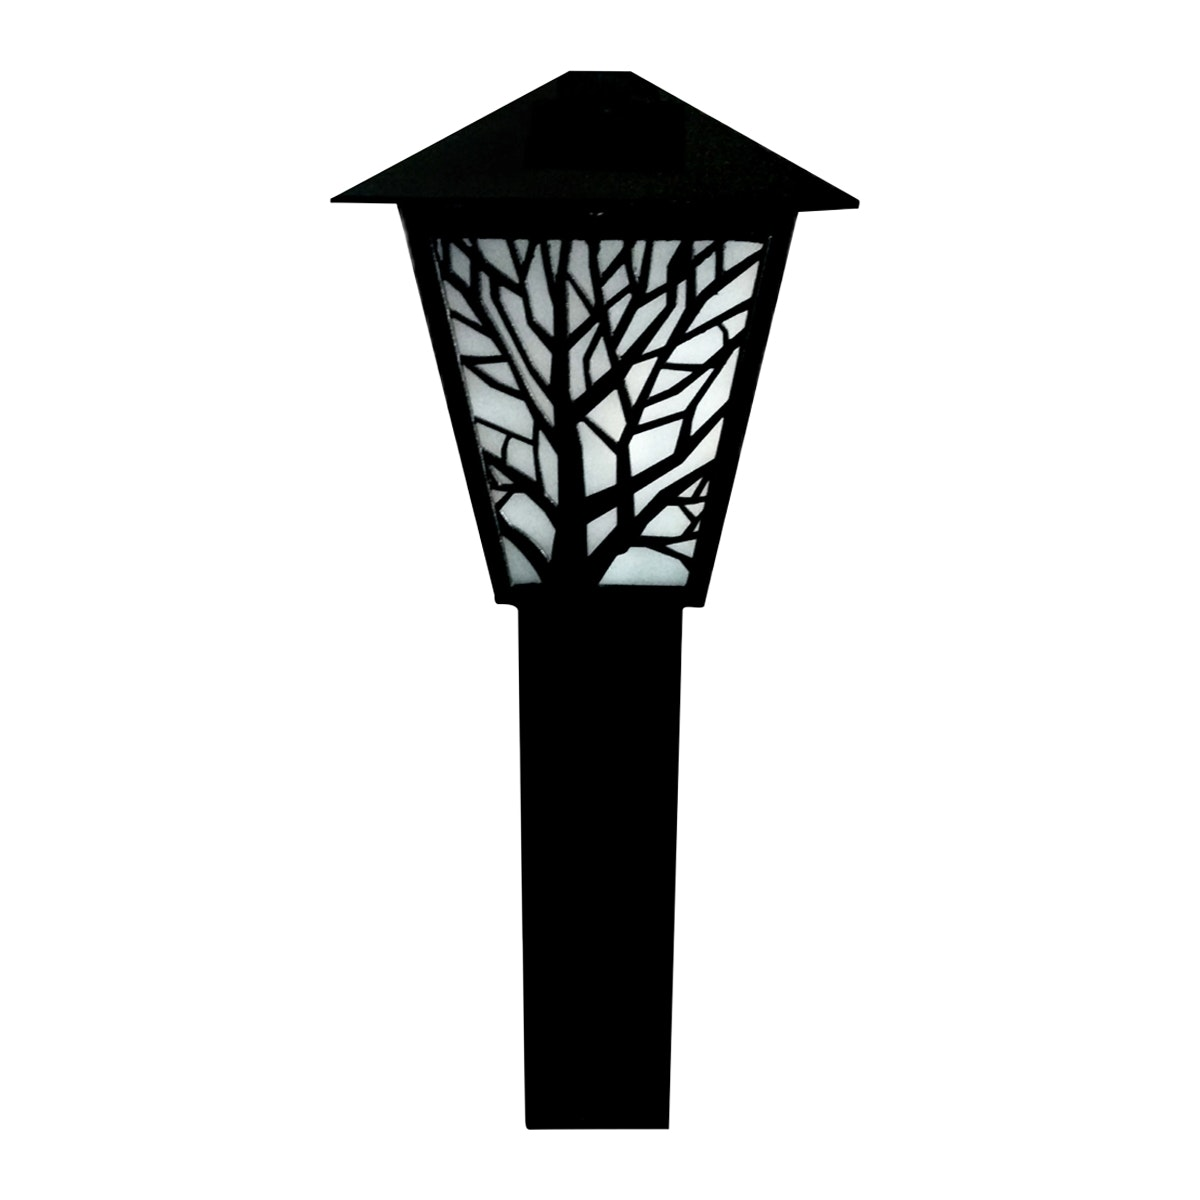 3+Projects Lawn Gate Lamp Black E27 socket, Glass/PC diffuser,aluminium material, IP44 226*600 MAX 40W,CFL